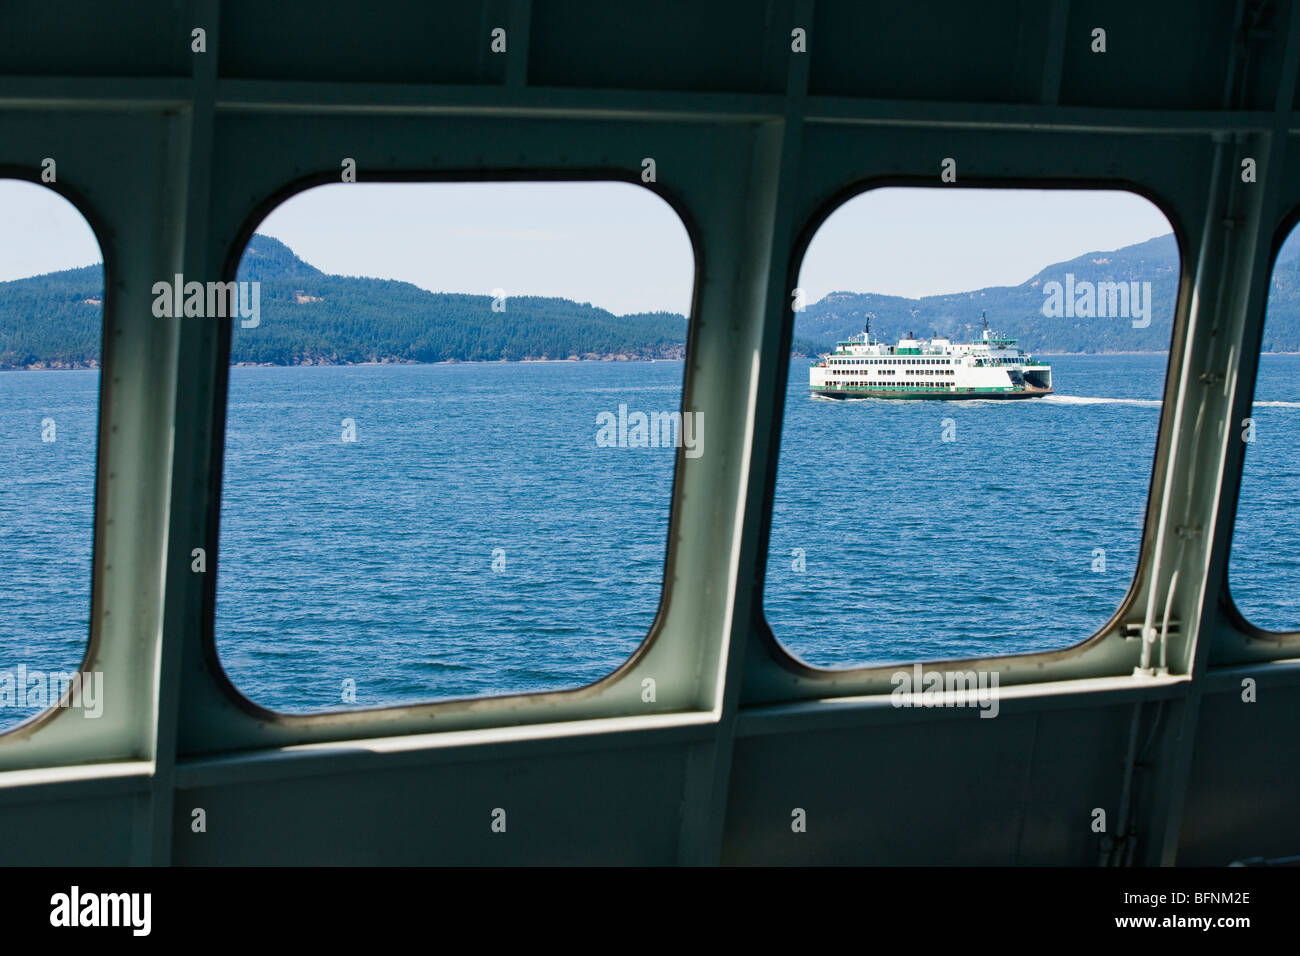 A Washington State ferry seen through the windows of another stste ferry in the San Juan Islands, Washington, USA. - Stock Image